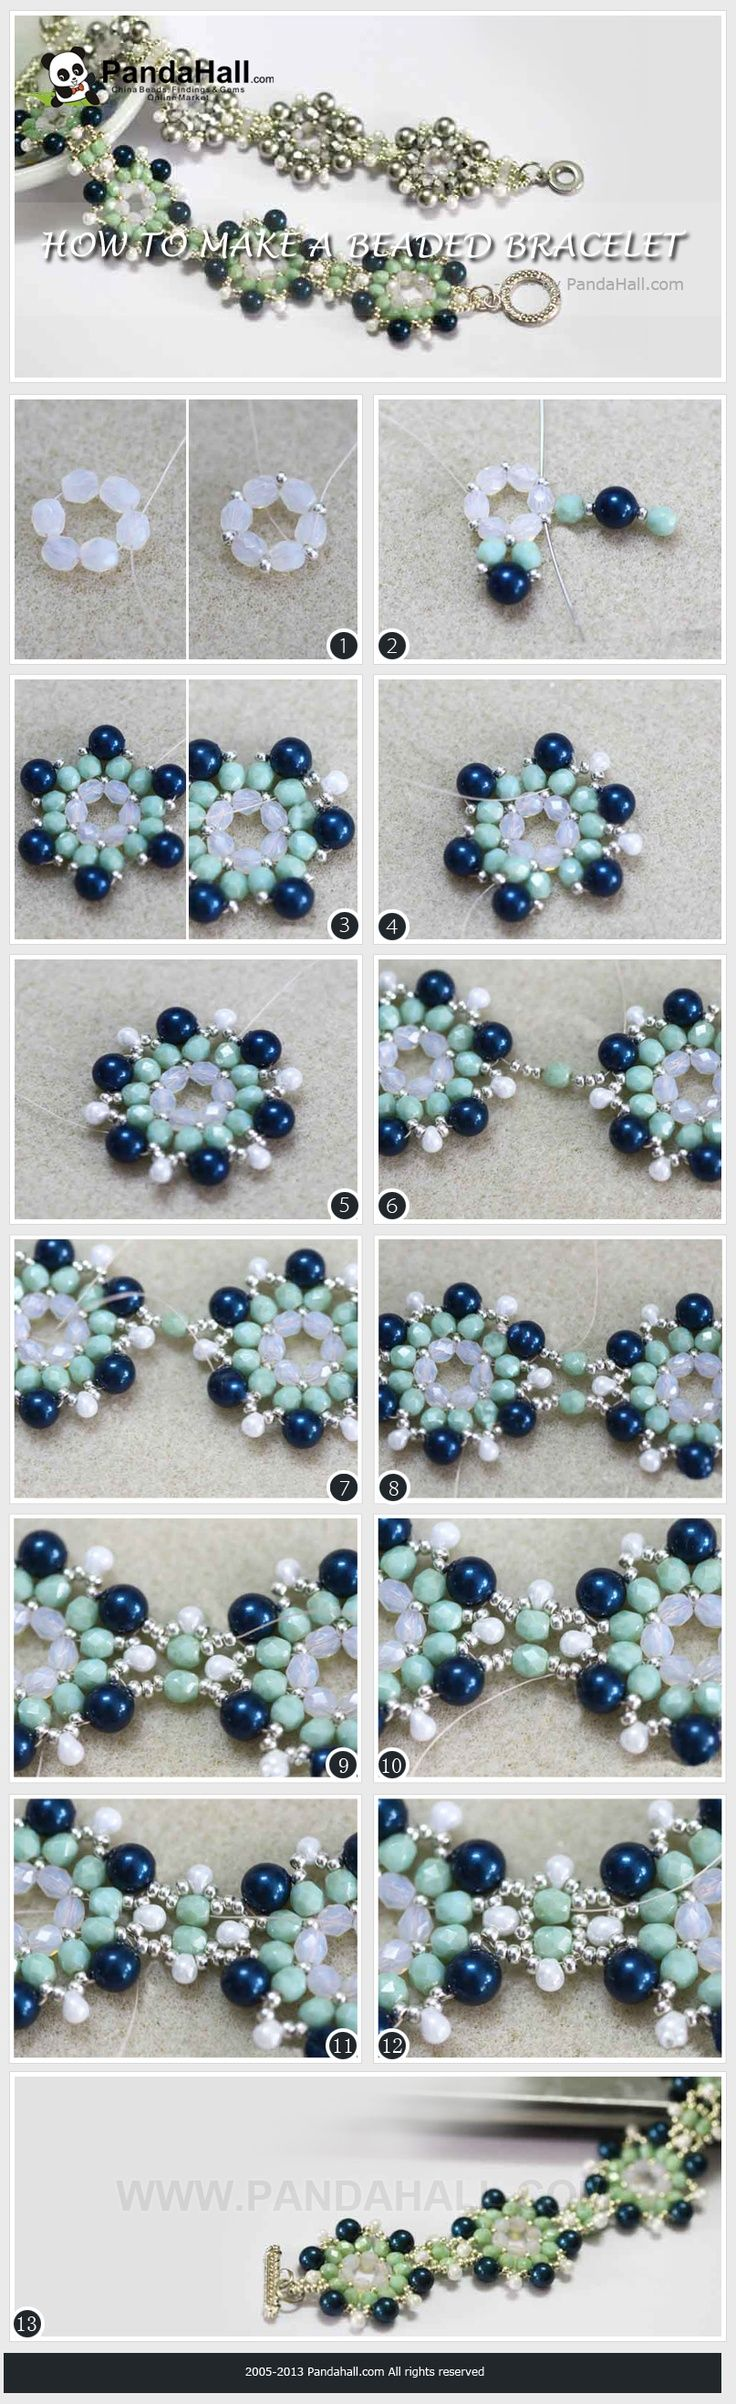 156 best images about native american beading tutorials and patterns find this pin and more on native american beading tutorials and patterns baditri Images